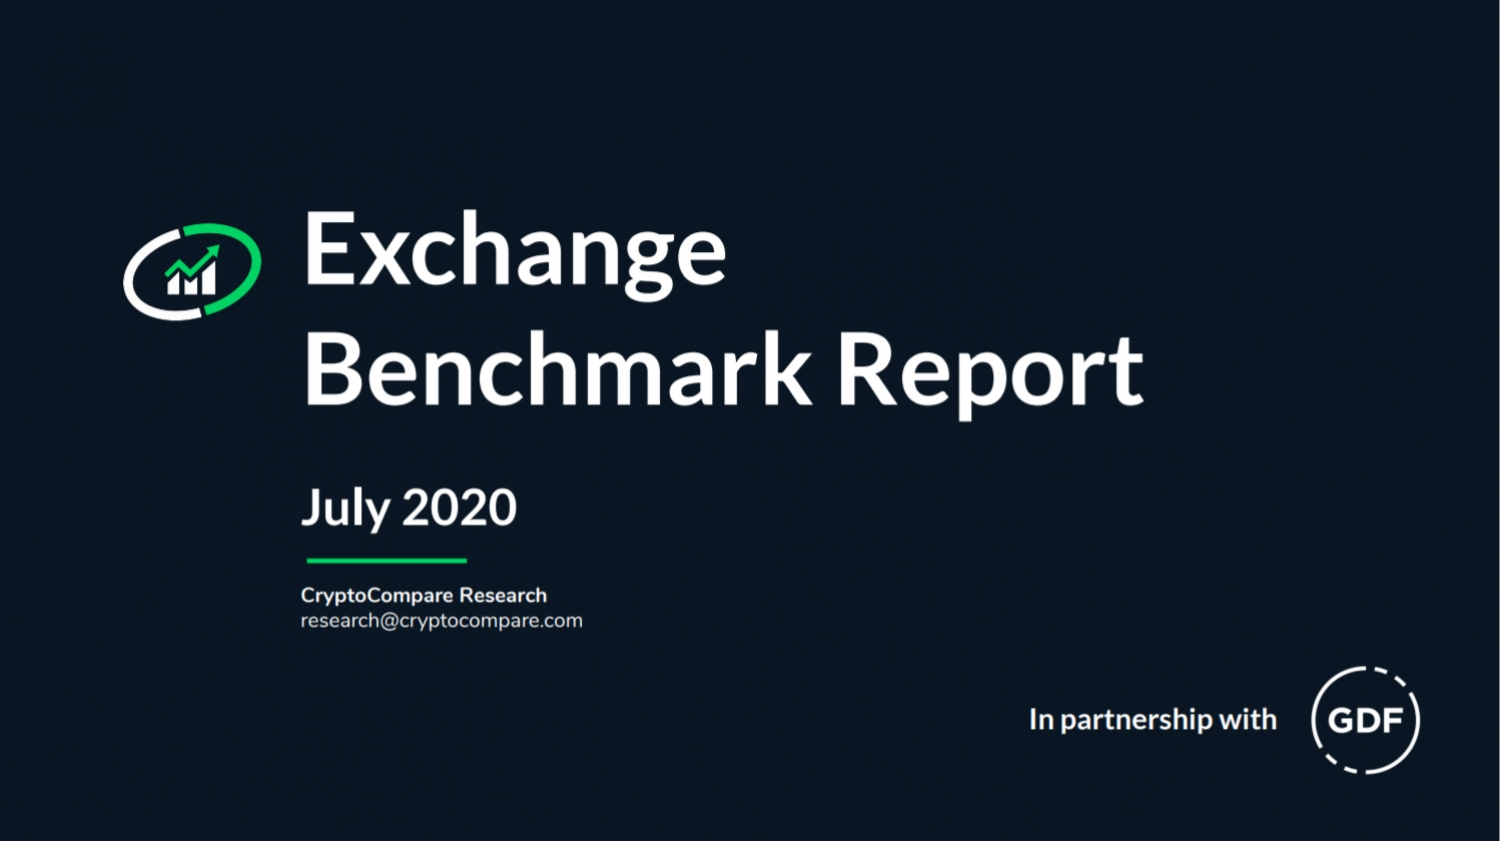 CRYPTOCOMPARE EXCHANGE BENCHMARK JULY 2020